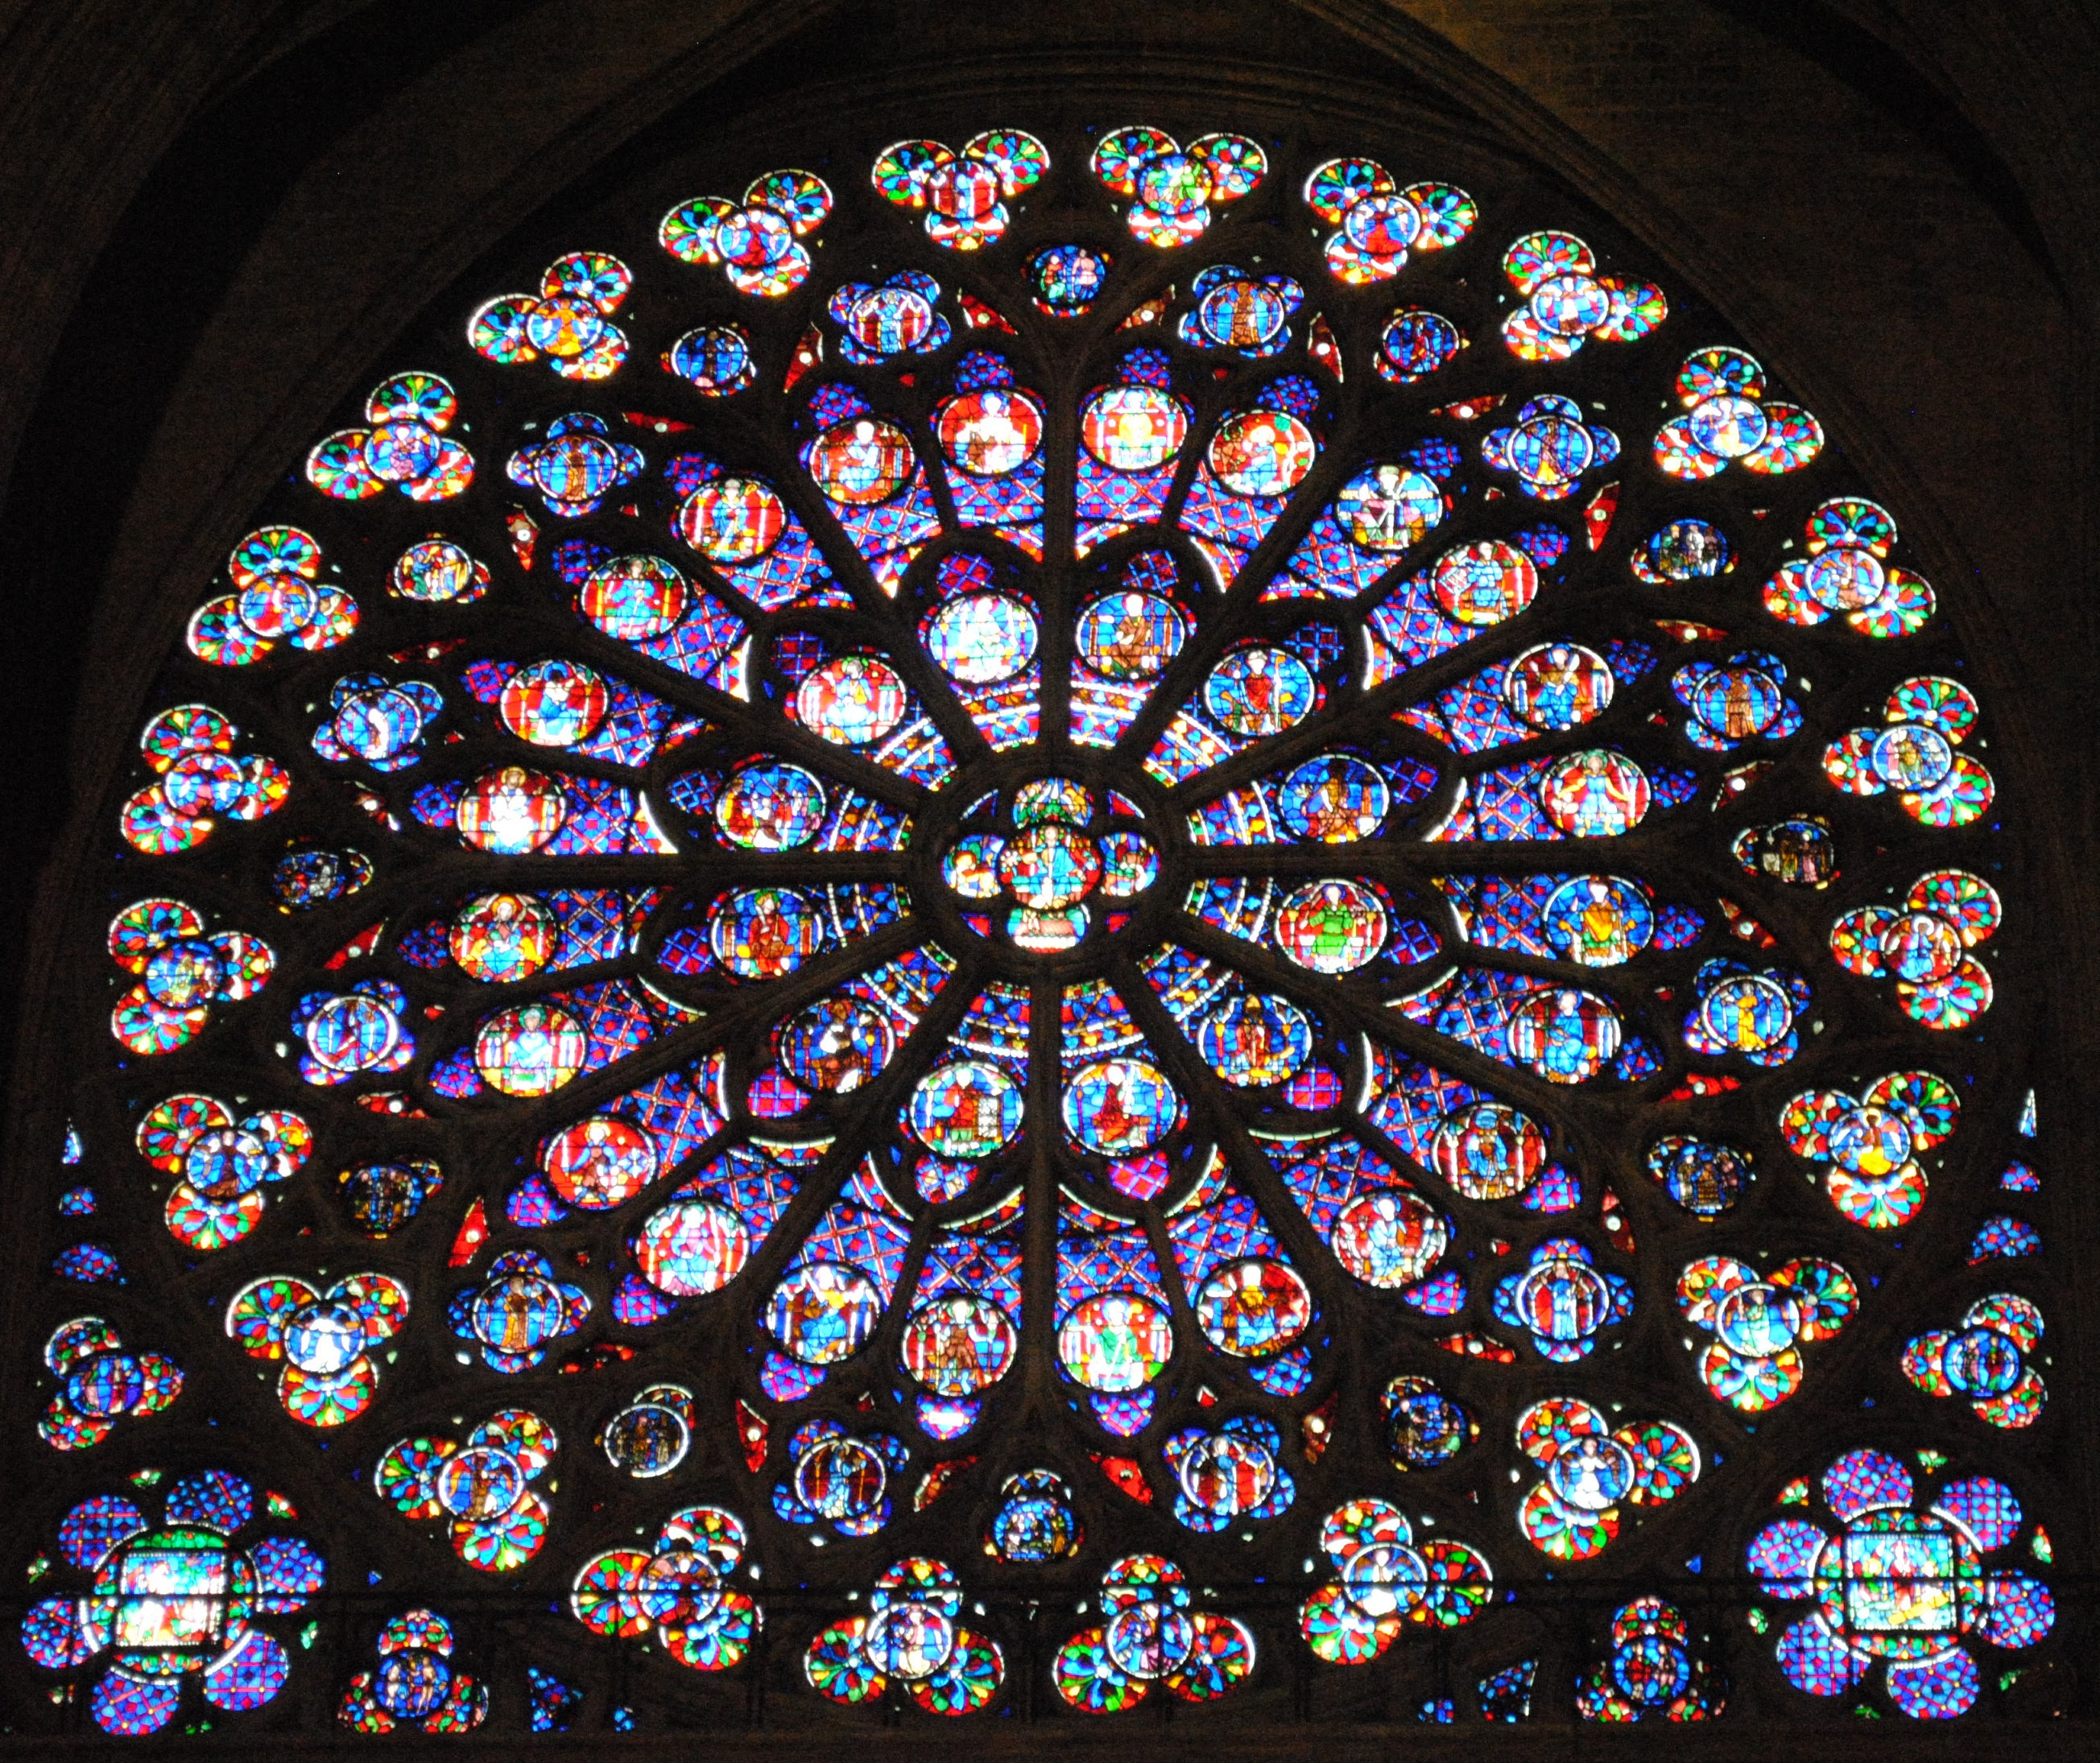 My Photos: Stained Glass Windows of Notre Dame